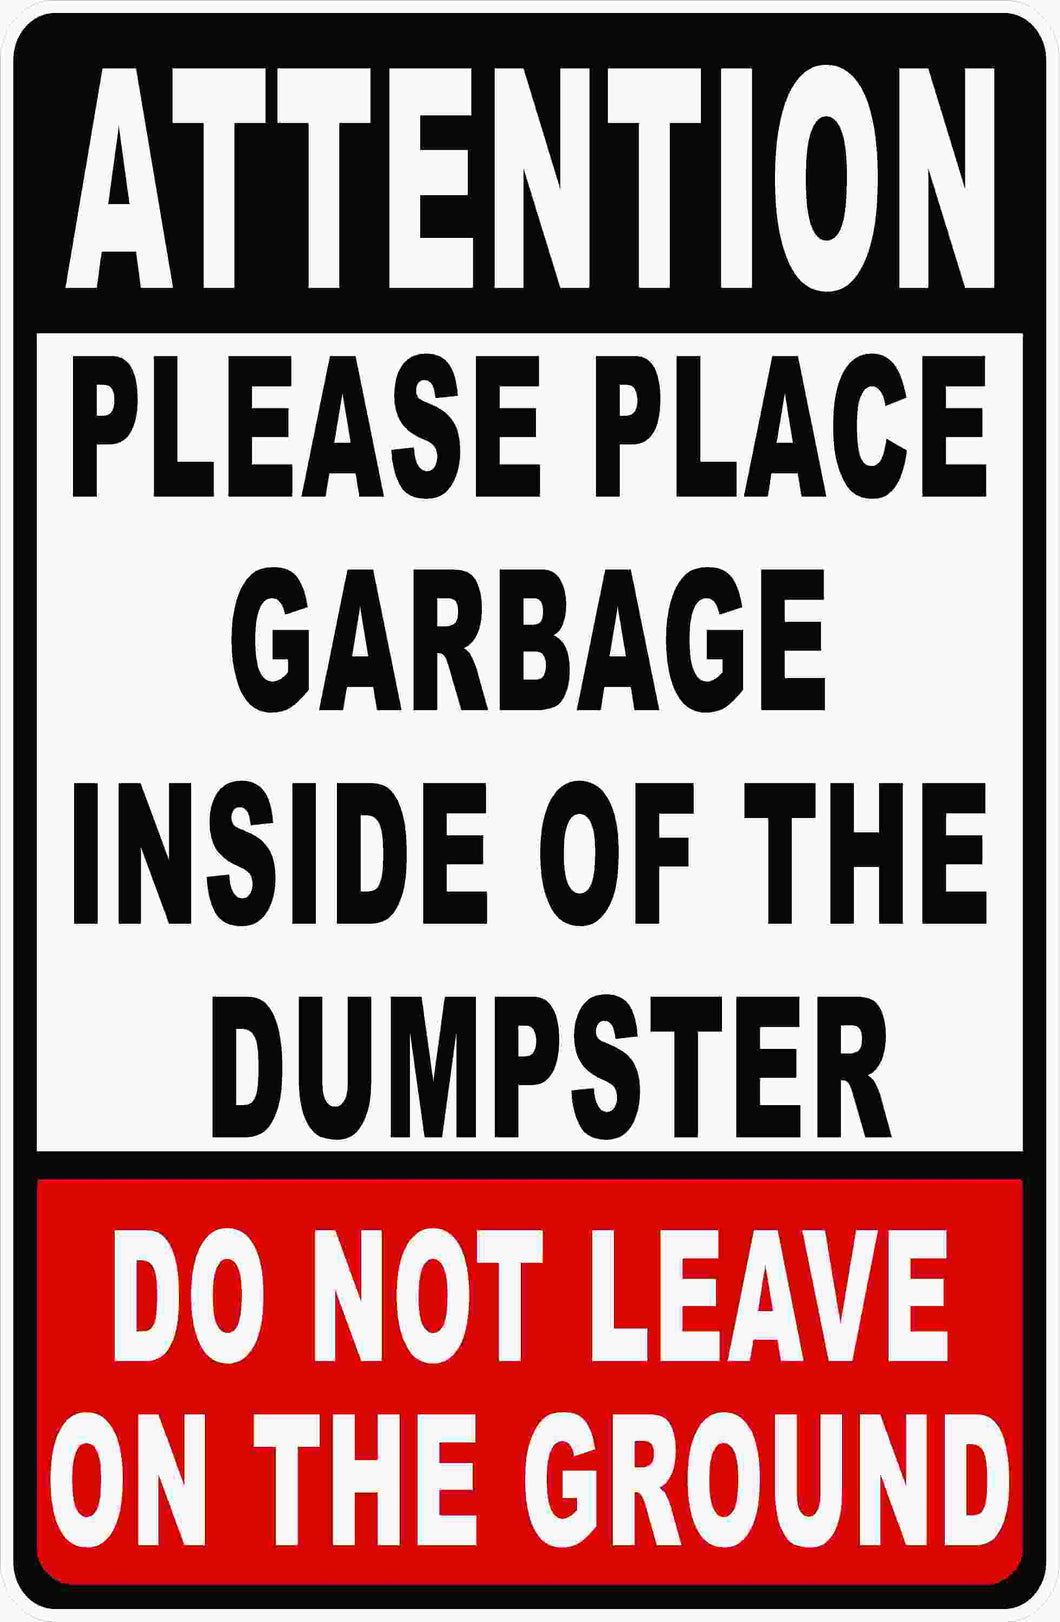 Dumpster Rules Sign by Sala Graphics